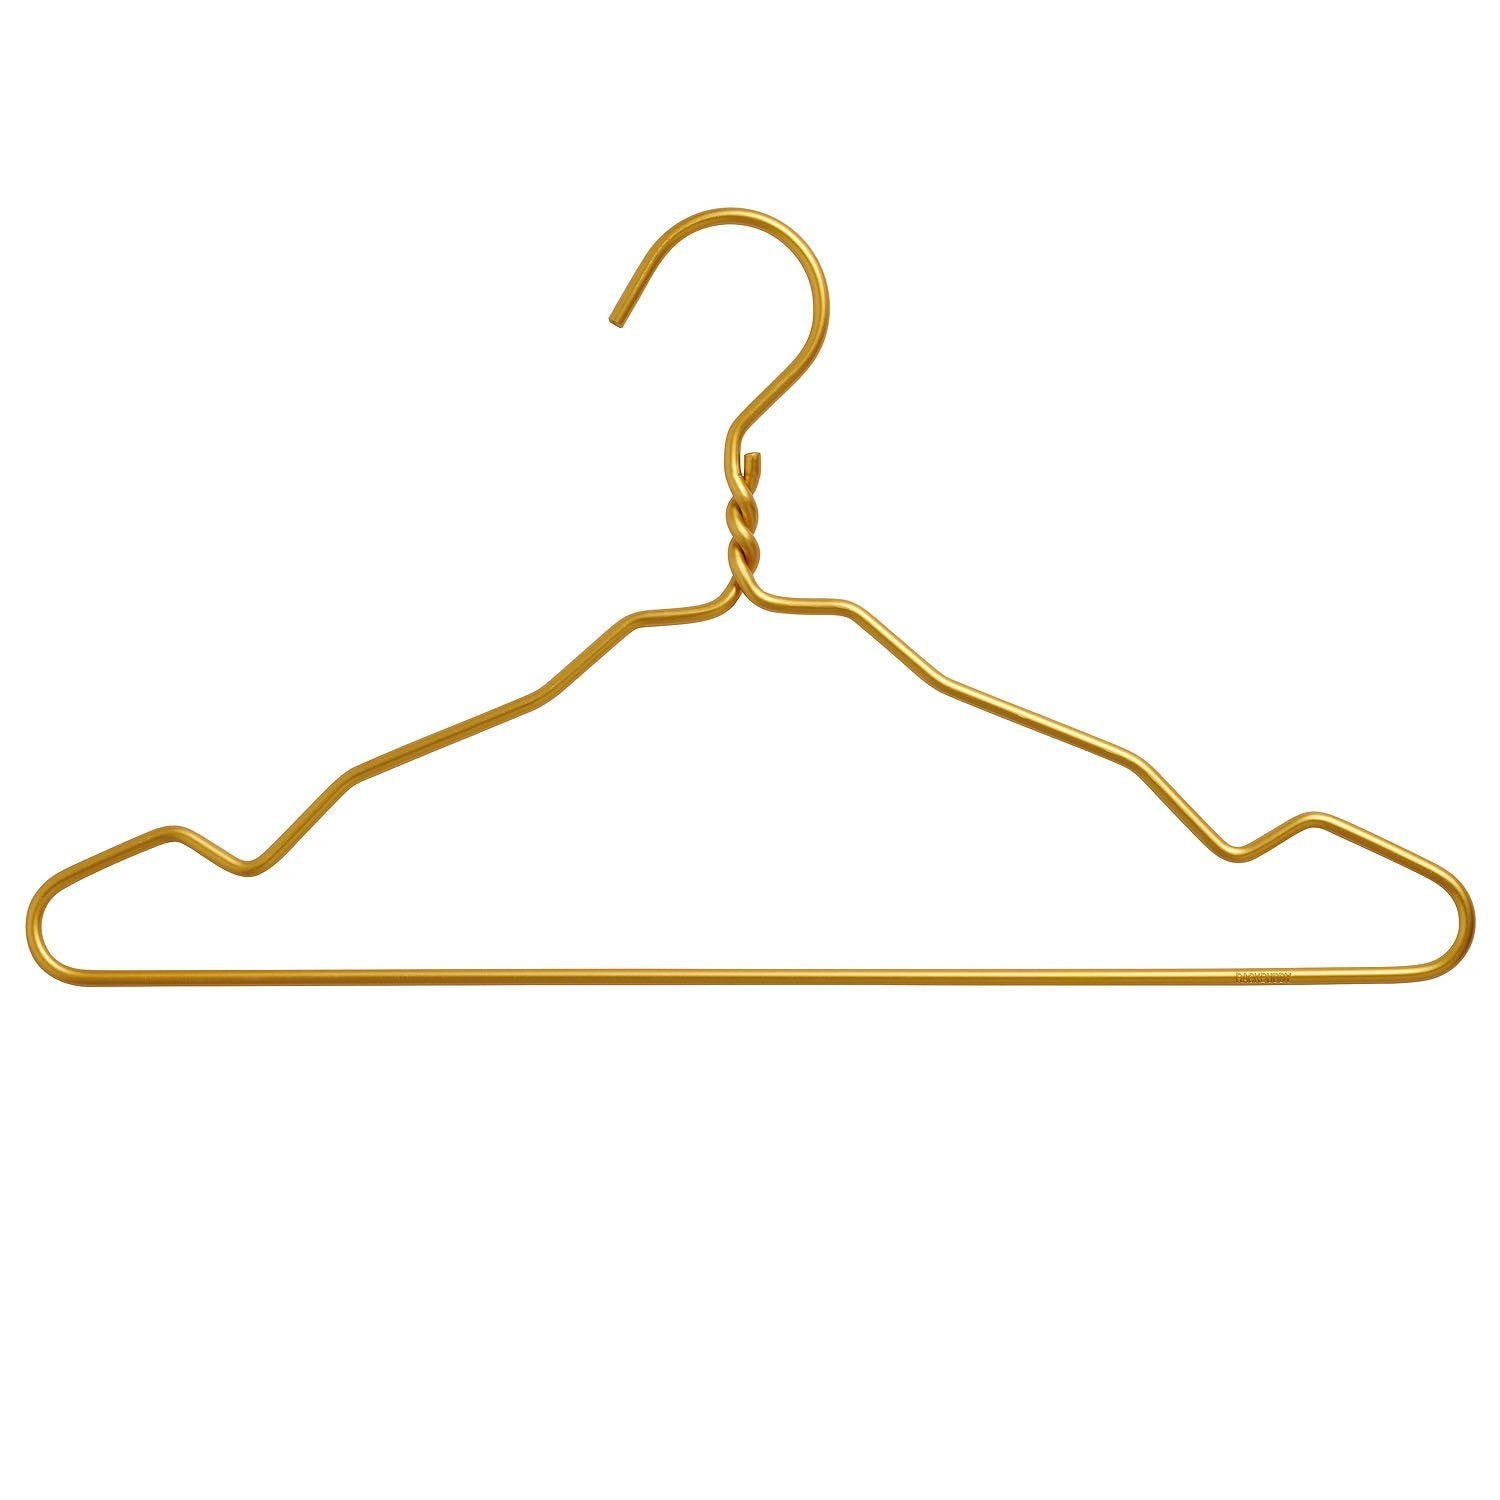 Clothes hangers in gold